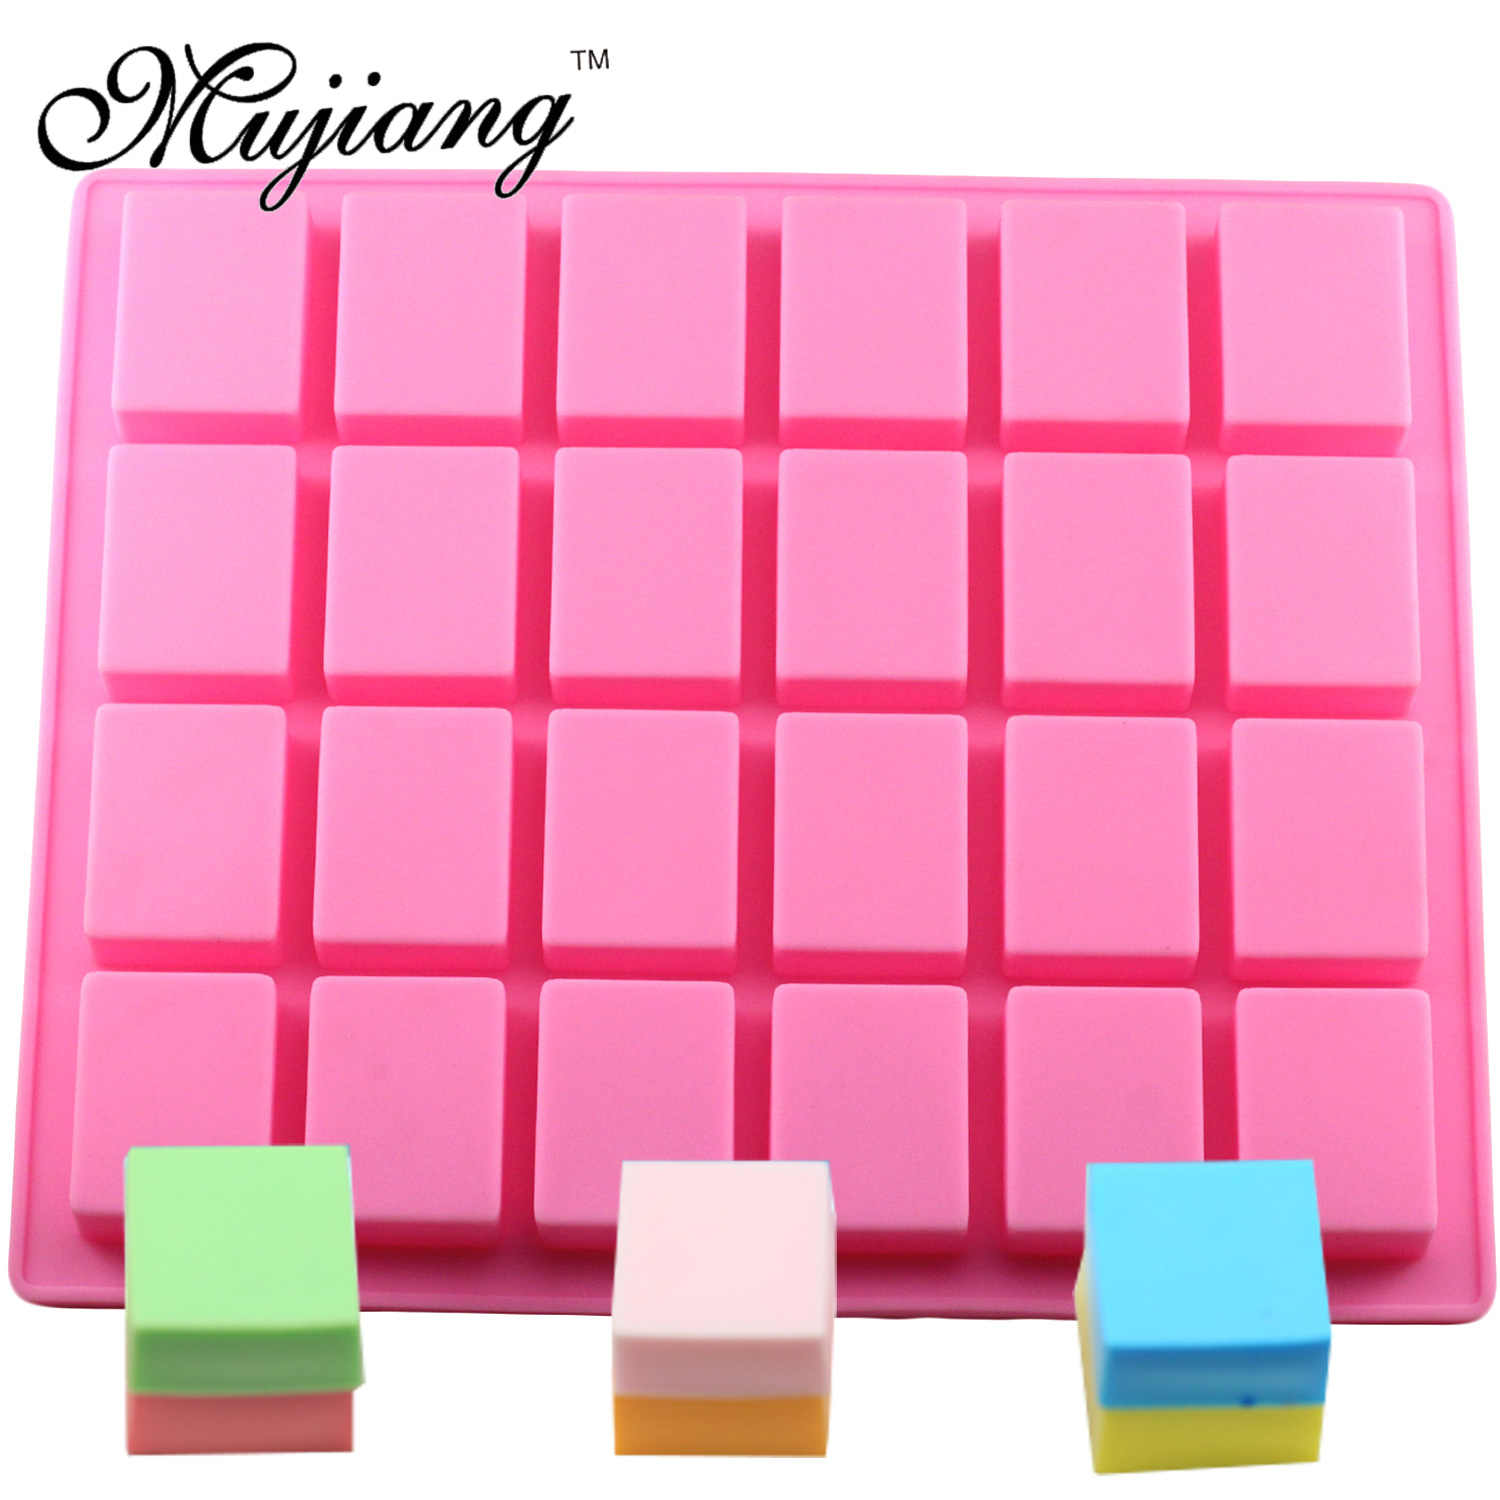 Candy Tiny Square Silicone Mold  Reusable Chocolate Candle Cake Baking Tool  Mini Cube Block Baking Pan   Mini Cake Tray Cooking Soap